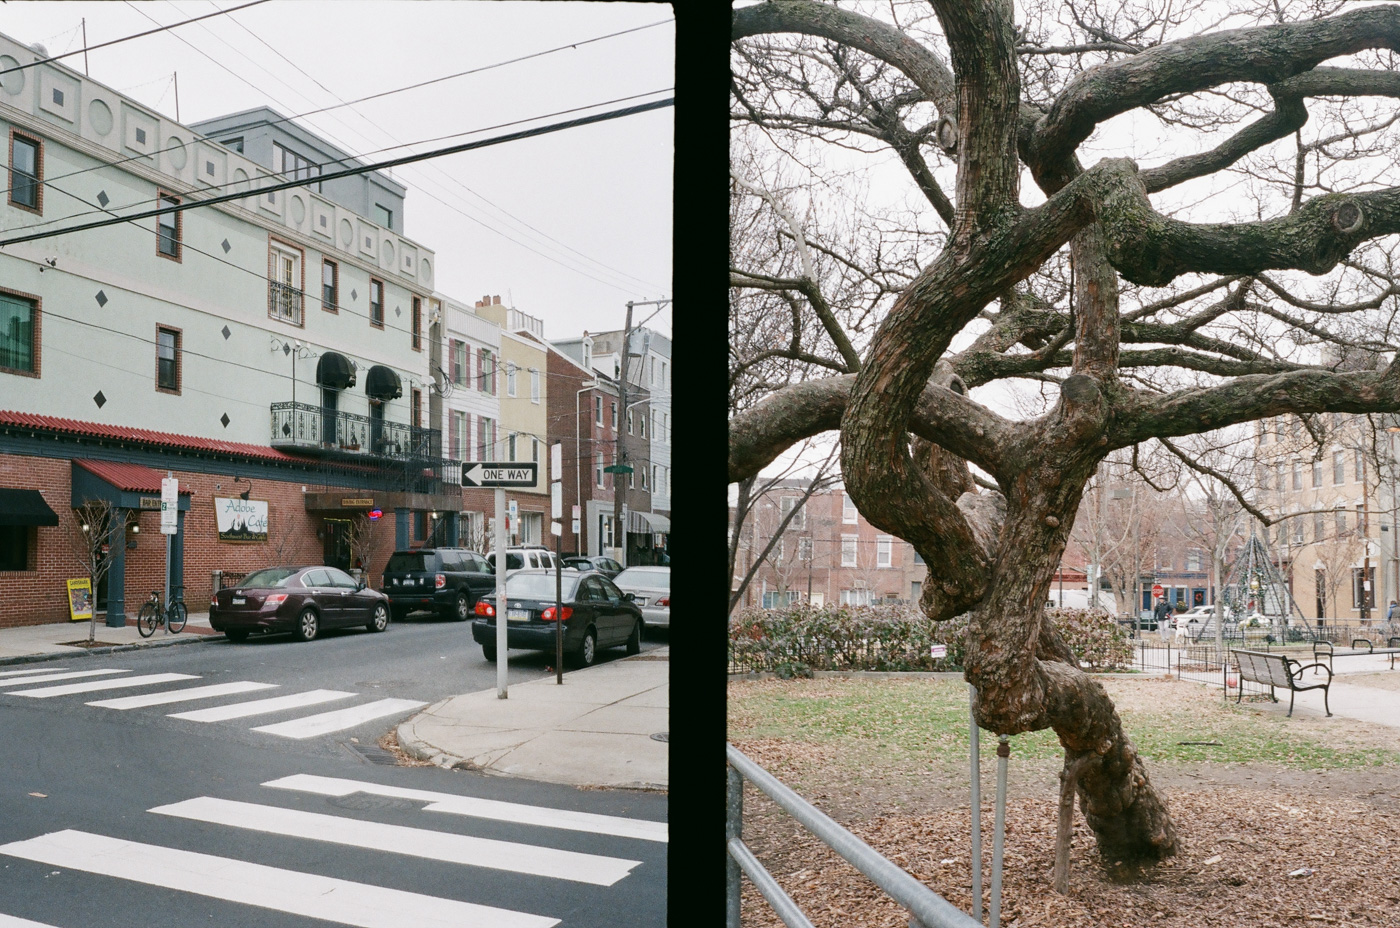 Adobe Cafe and Gnarled Tree